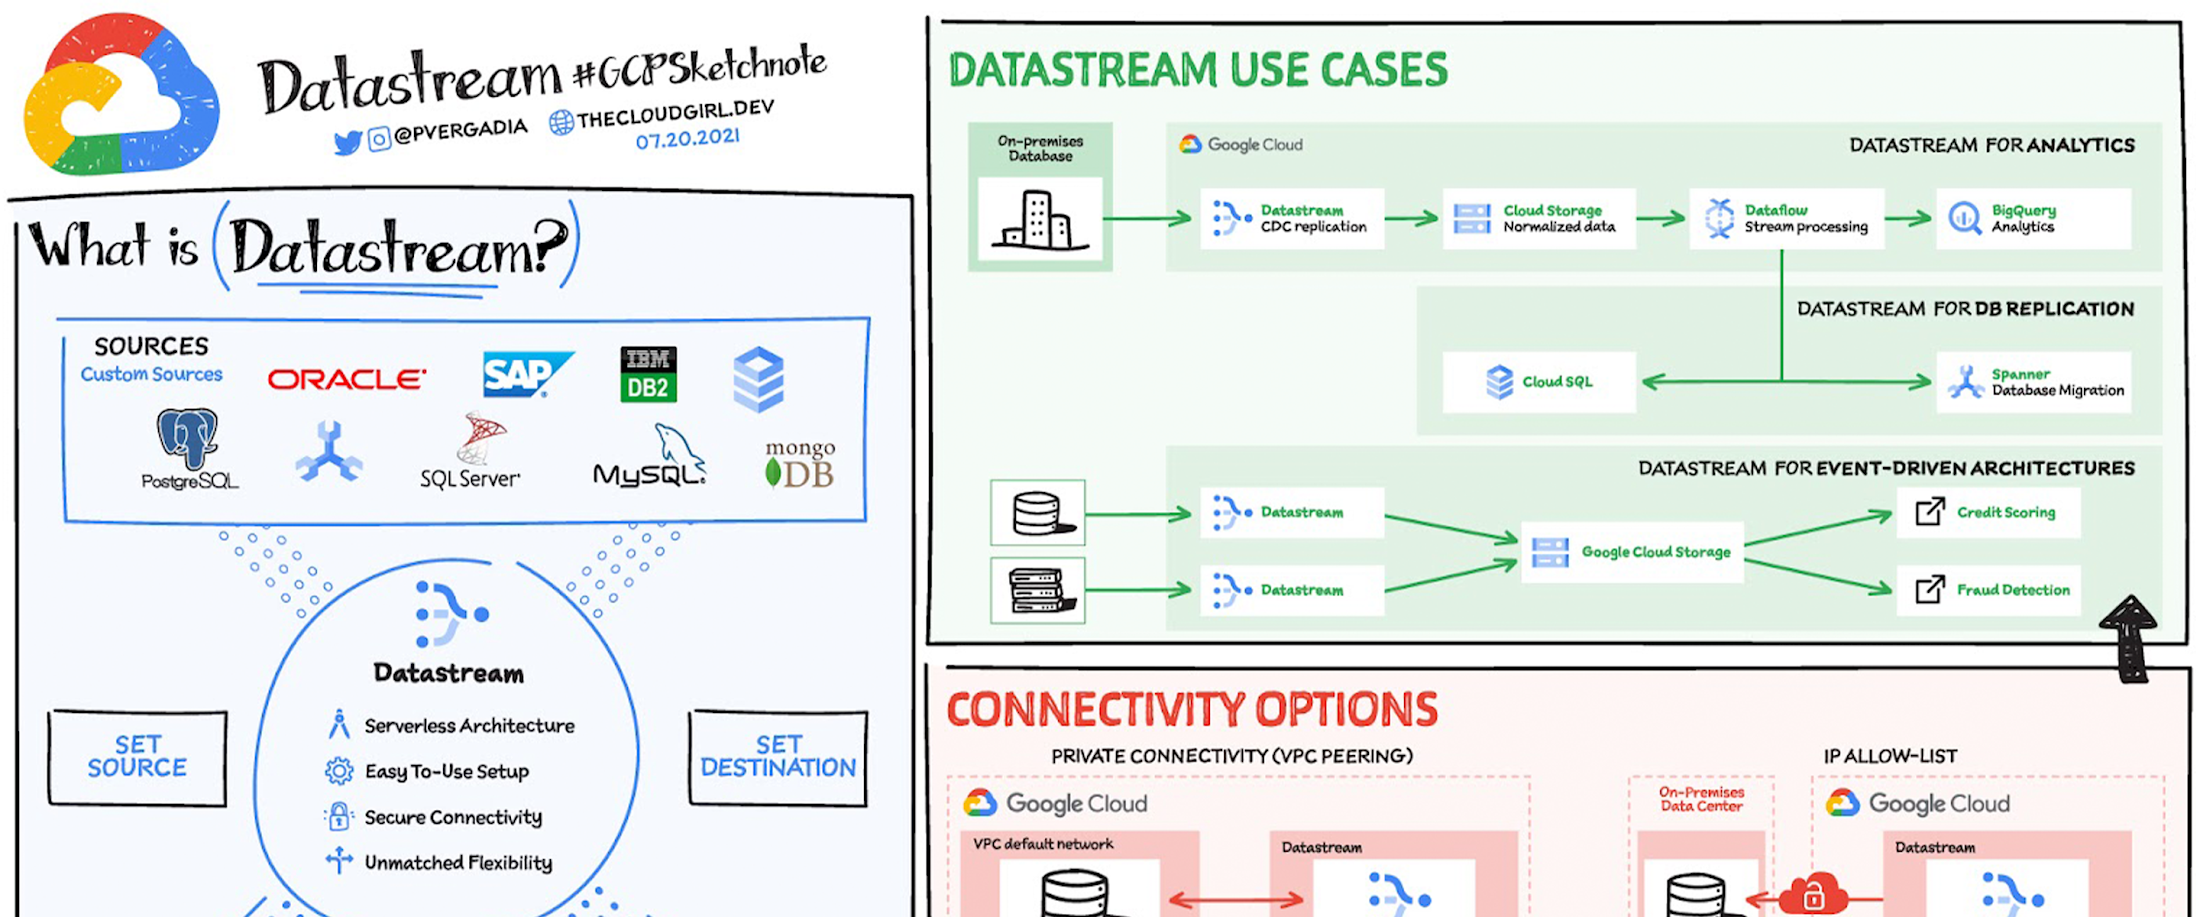 All you need to know about Datastream